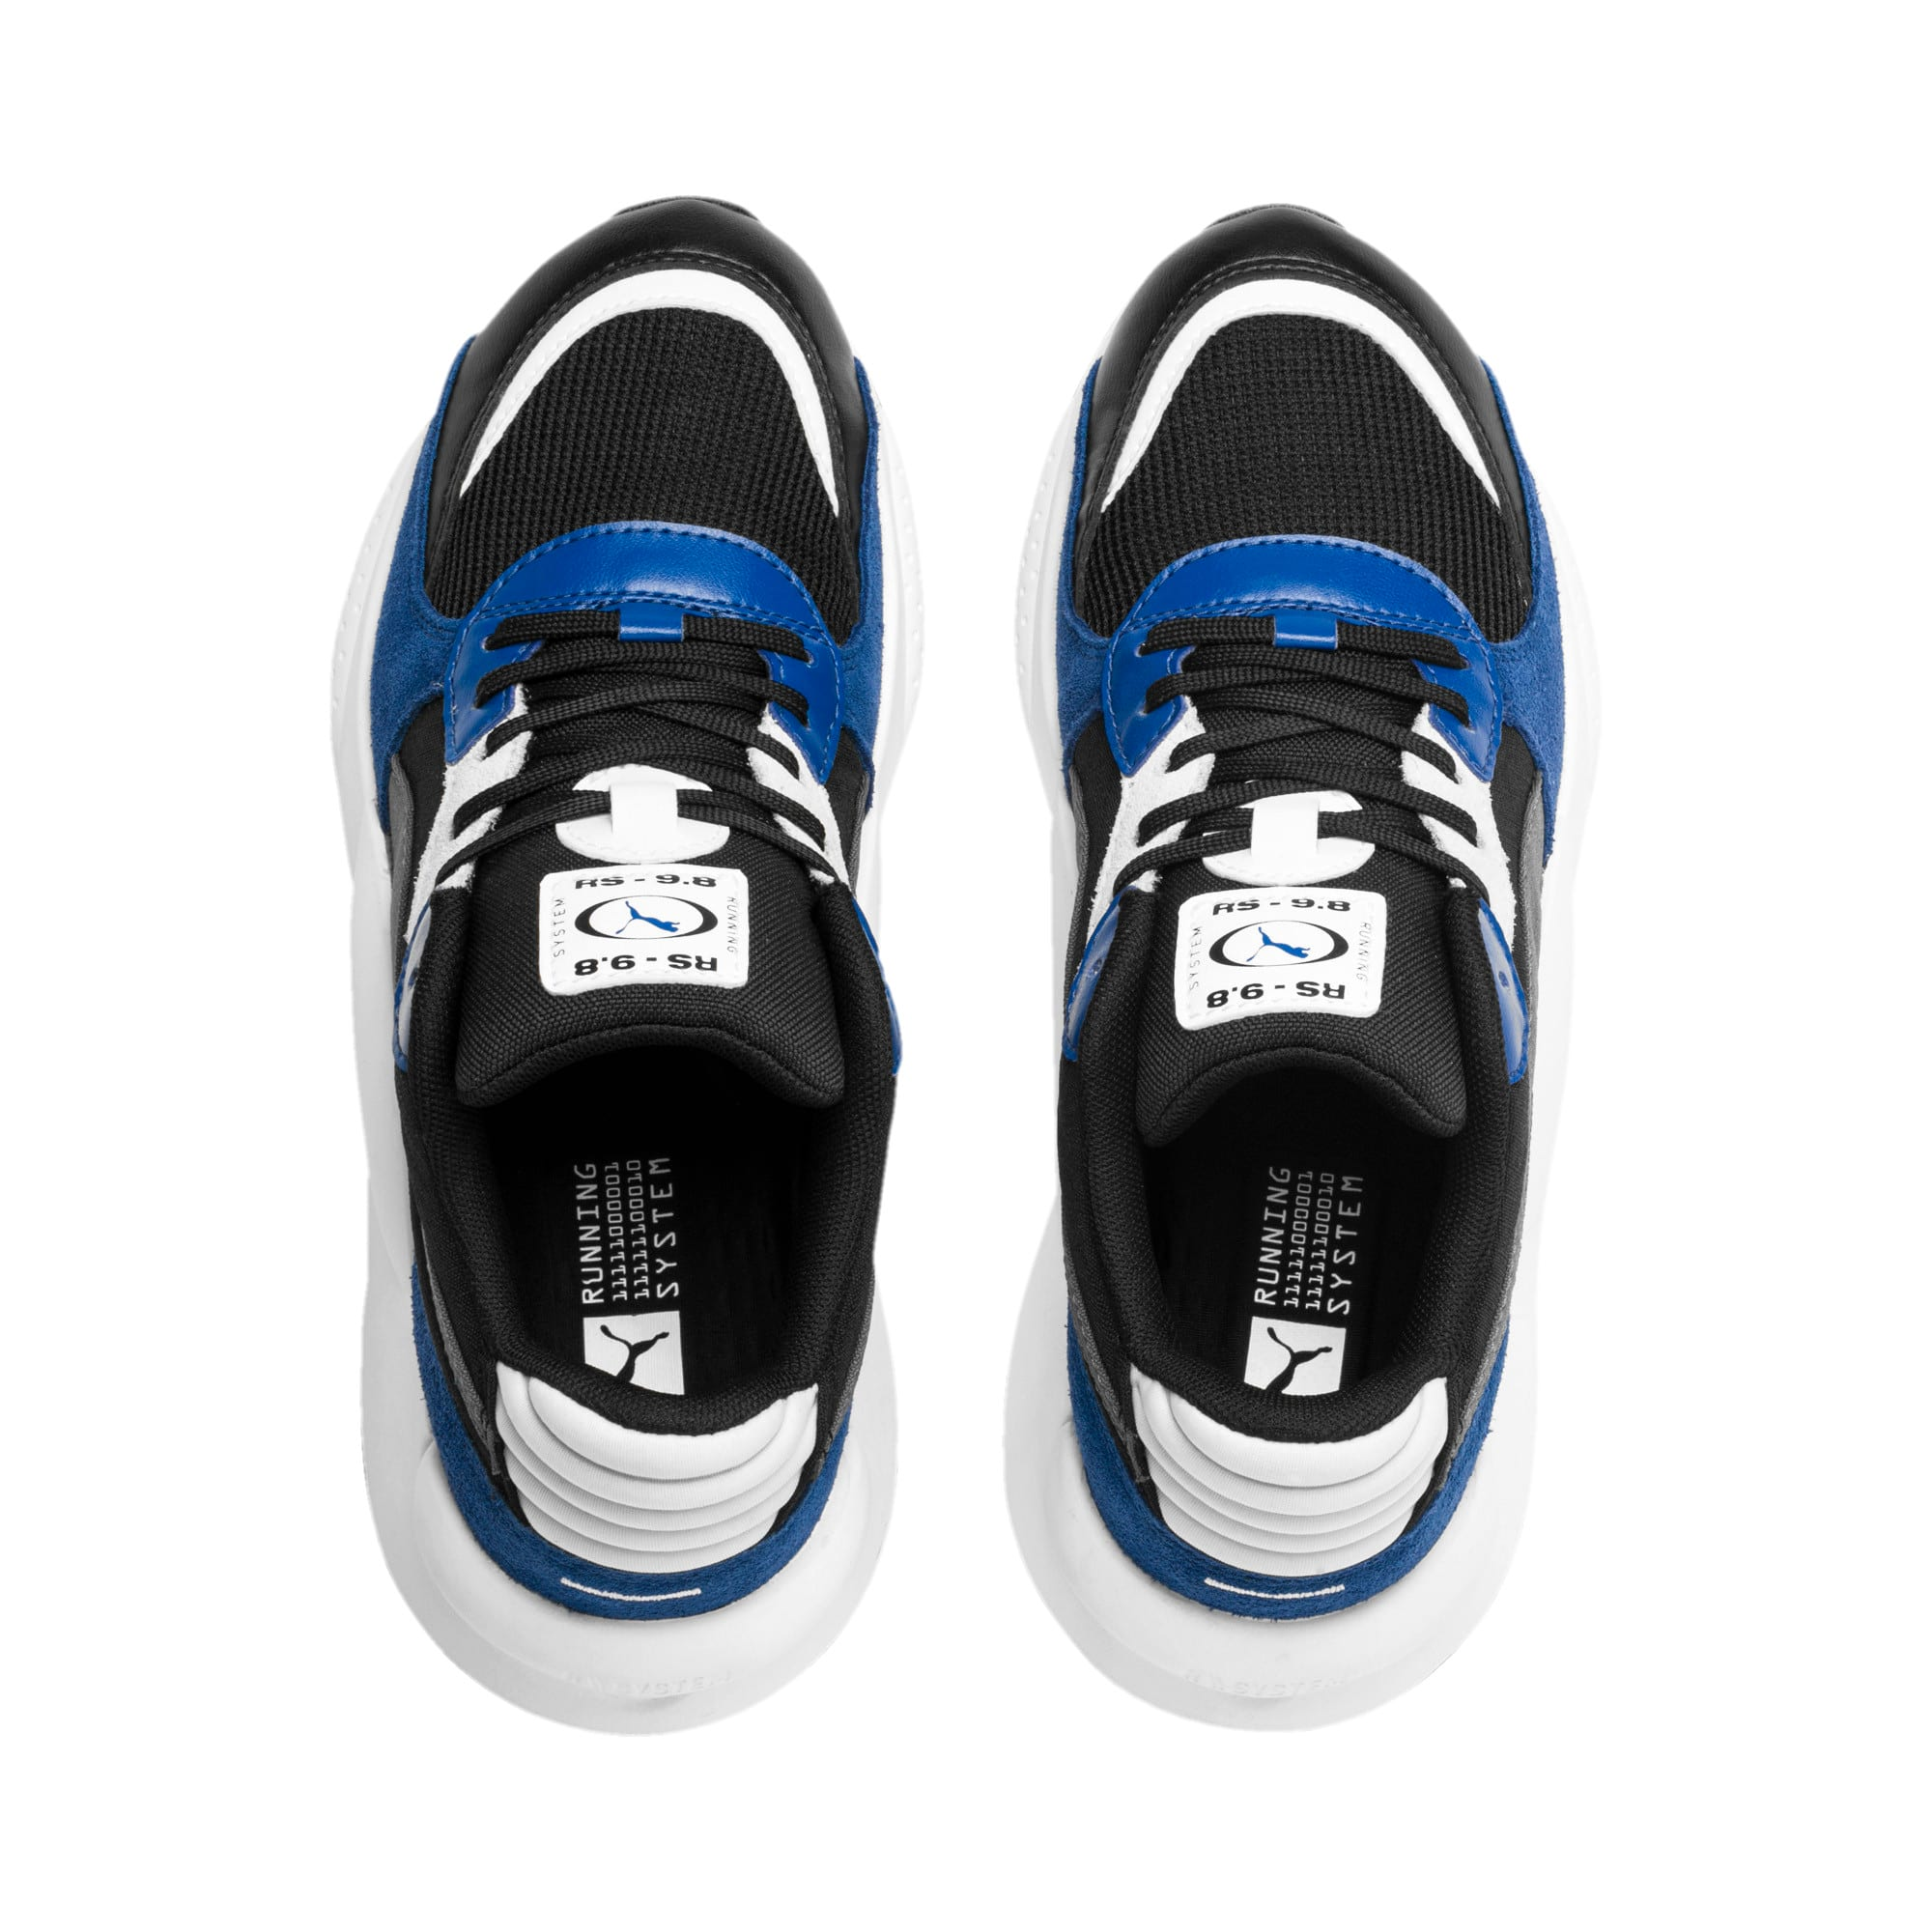 Thumbnail 6 of RS 9.8 Space Youth Sneaker, Puma Black-Galaxy Blue, medium